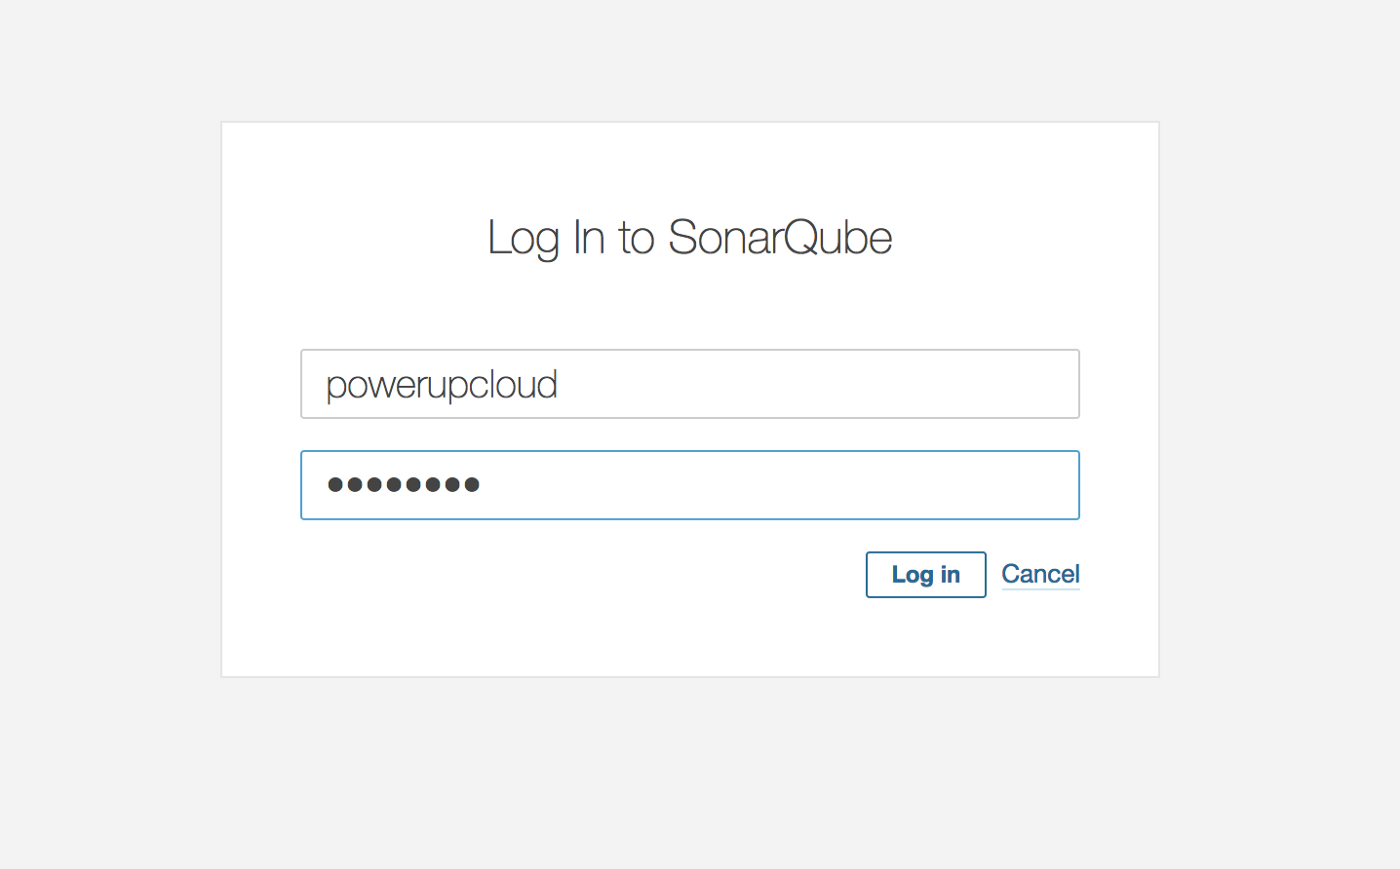 FreeIPA Integration with SonarQube: Part IV - Powerupcloud Tech Blog